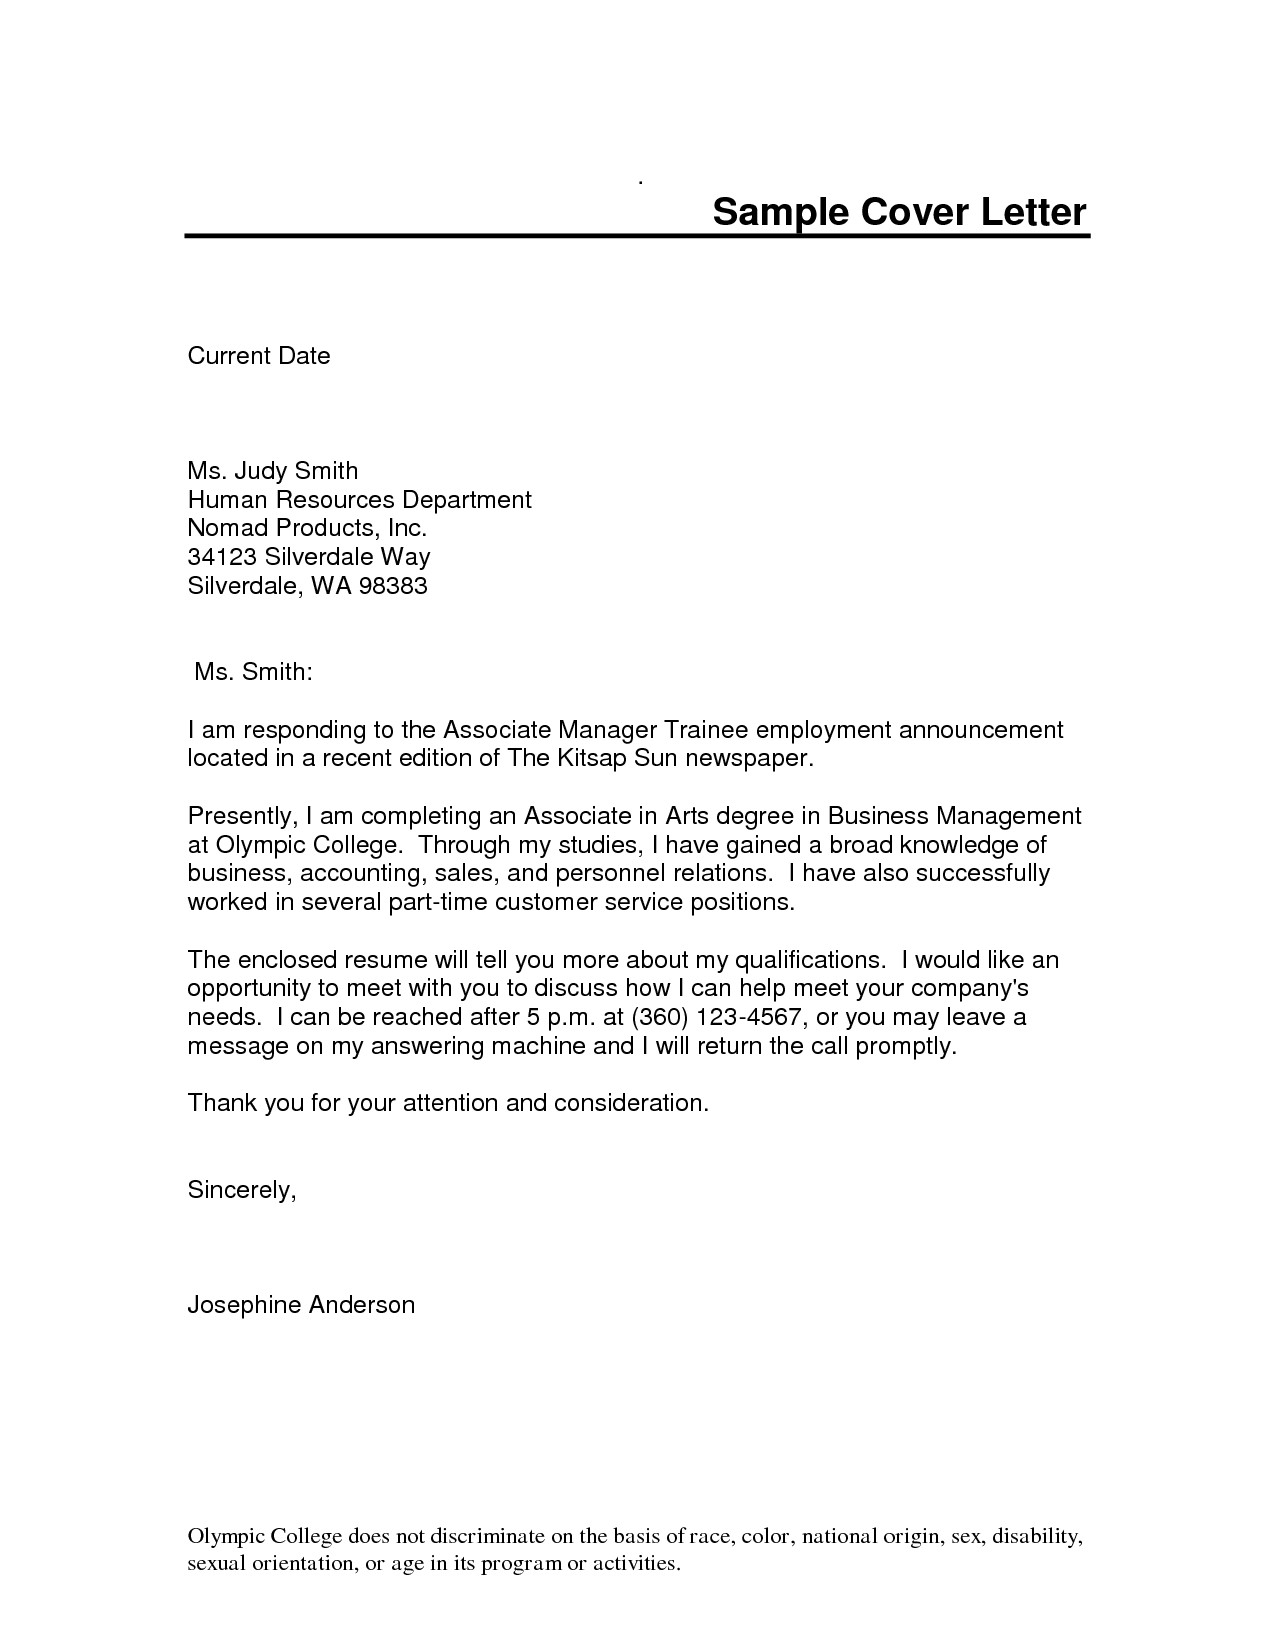 Microsoft Word Cover Letter Template Cover Letter Template Word